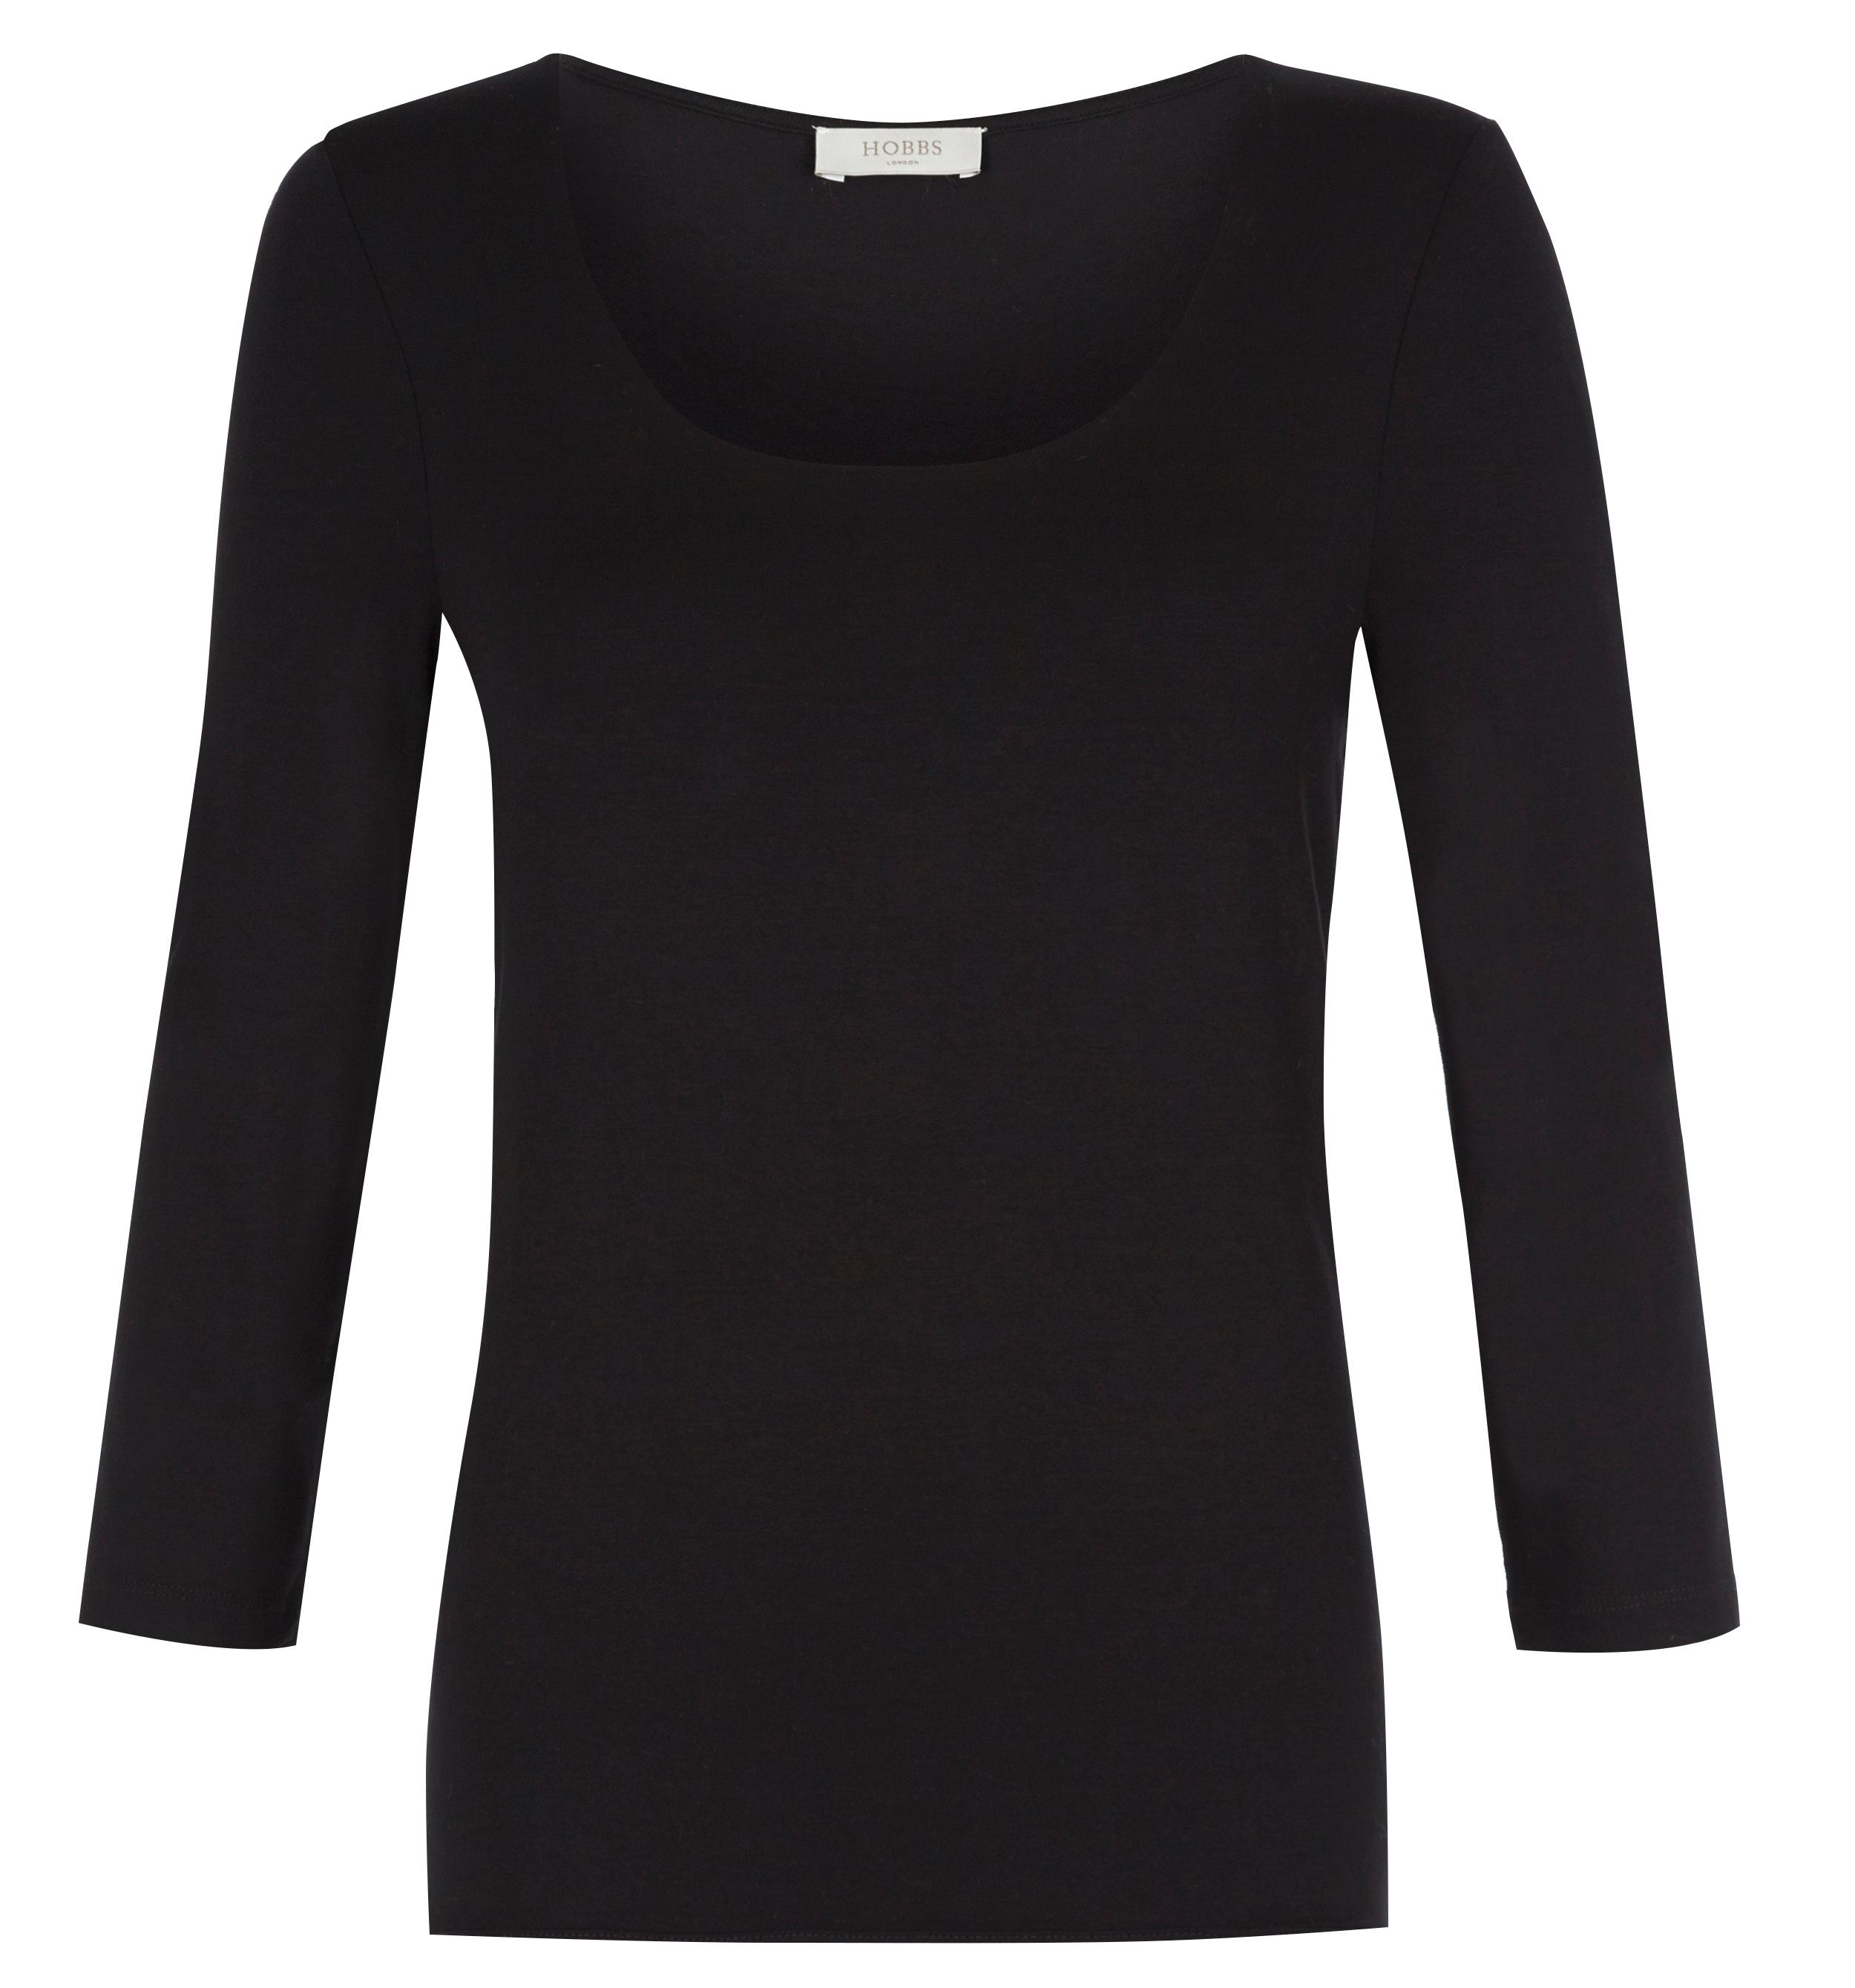 Hobbs Hobbs Sophie Top, Black